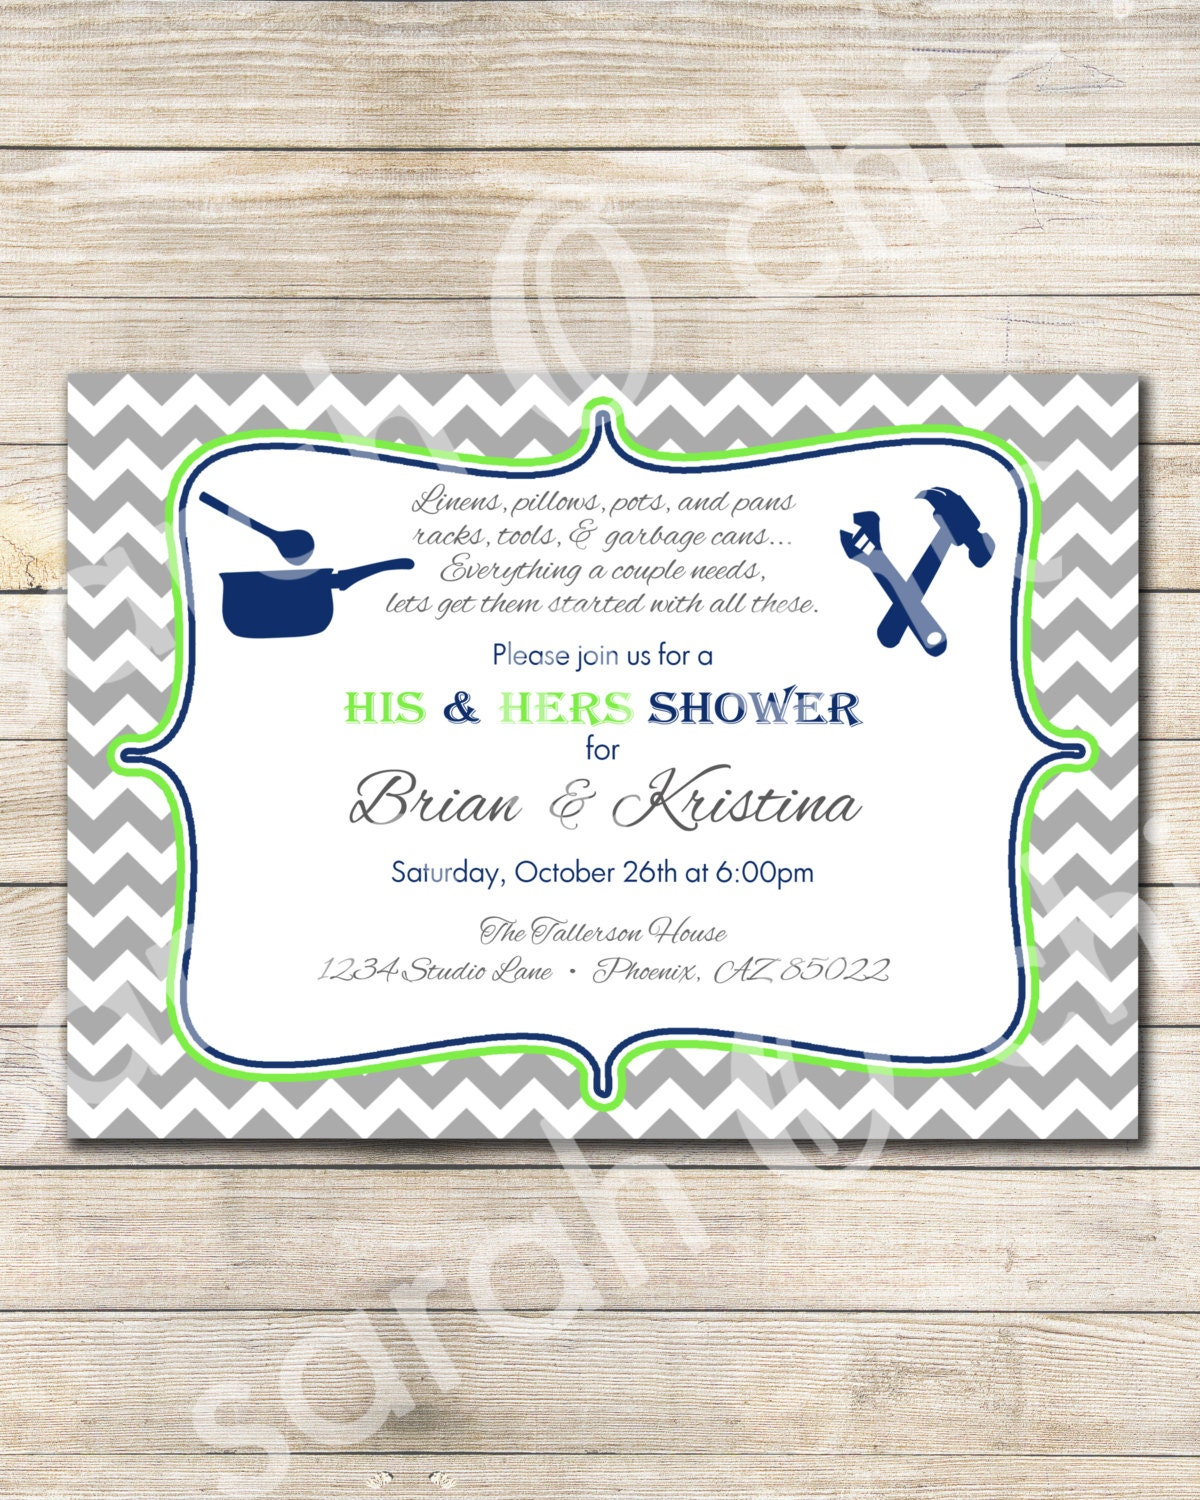 His Hers Wedding Invitations Templates: His And Hers Wedding Shower Invitation Colors By SarahOchic